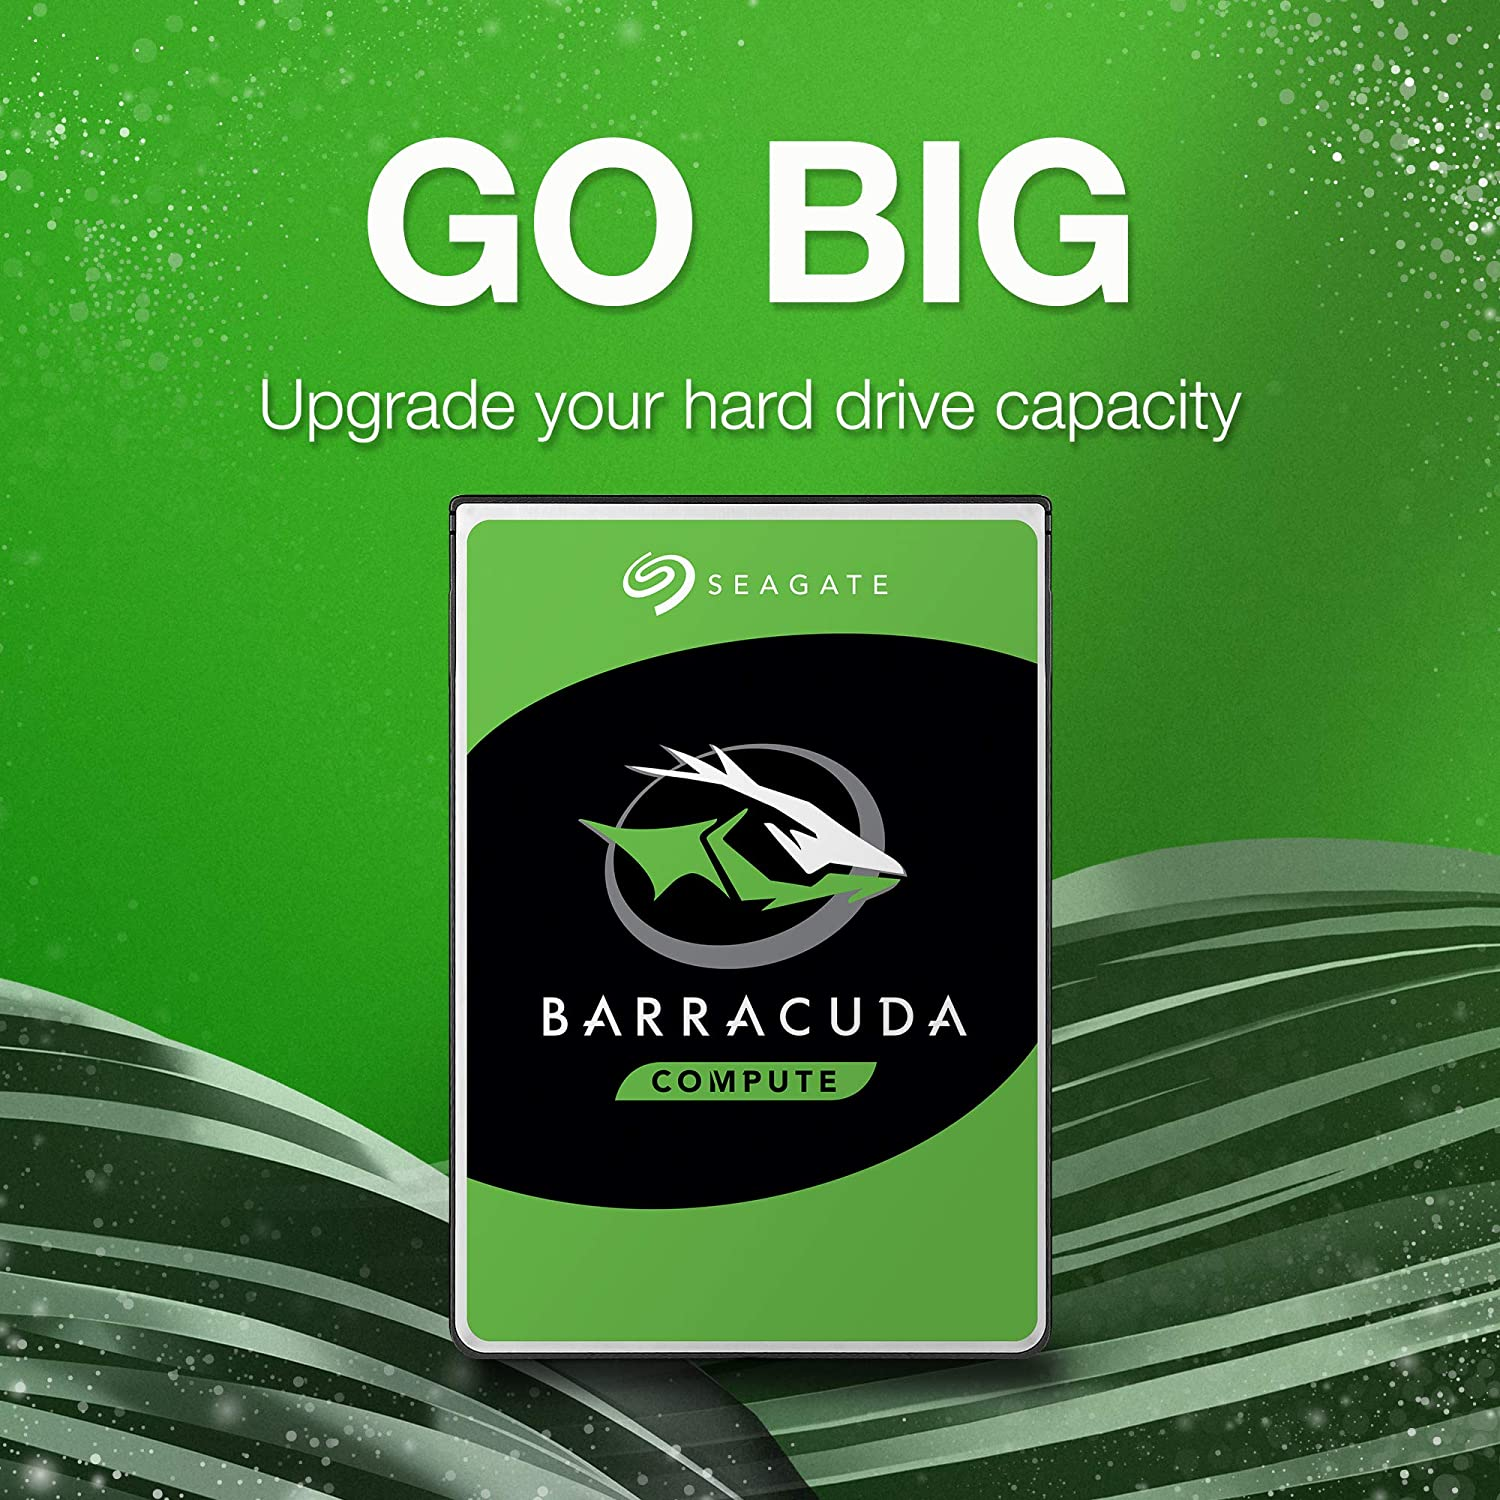 Seagate BarraCuda 4TB Internal Hard Drive HDD – 3.5 Inch Sata 6 Gb/s 5400 RPM 256MB Cache for Computer Desktop PC Laptop (ST4000DM004)